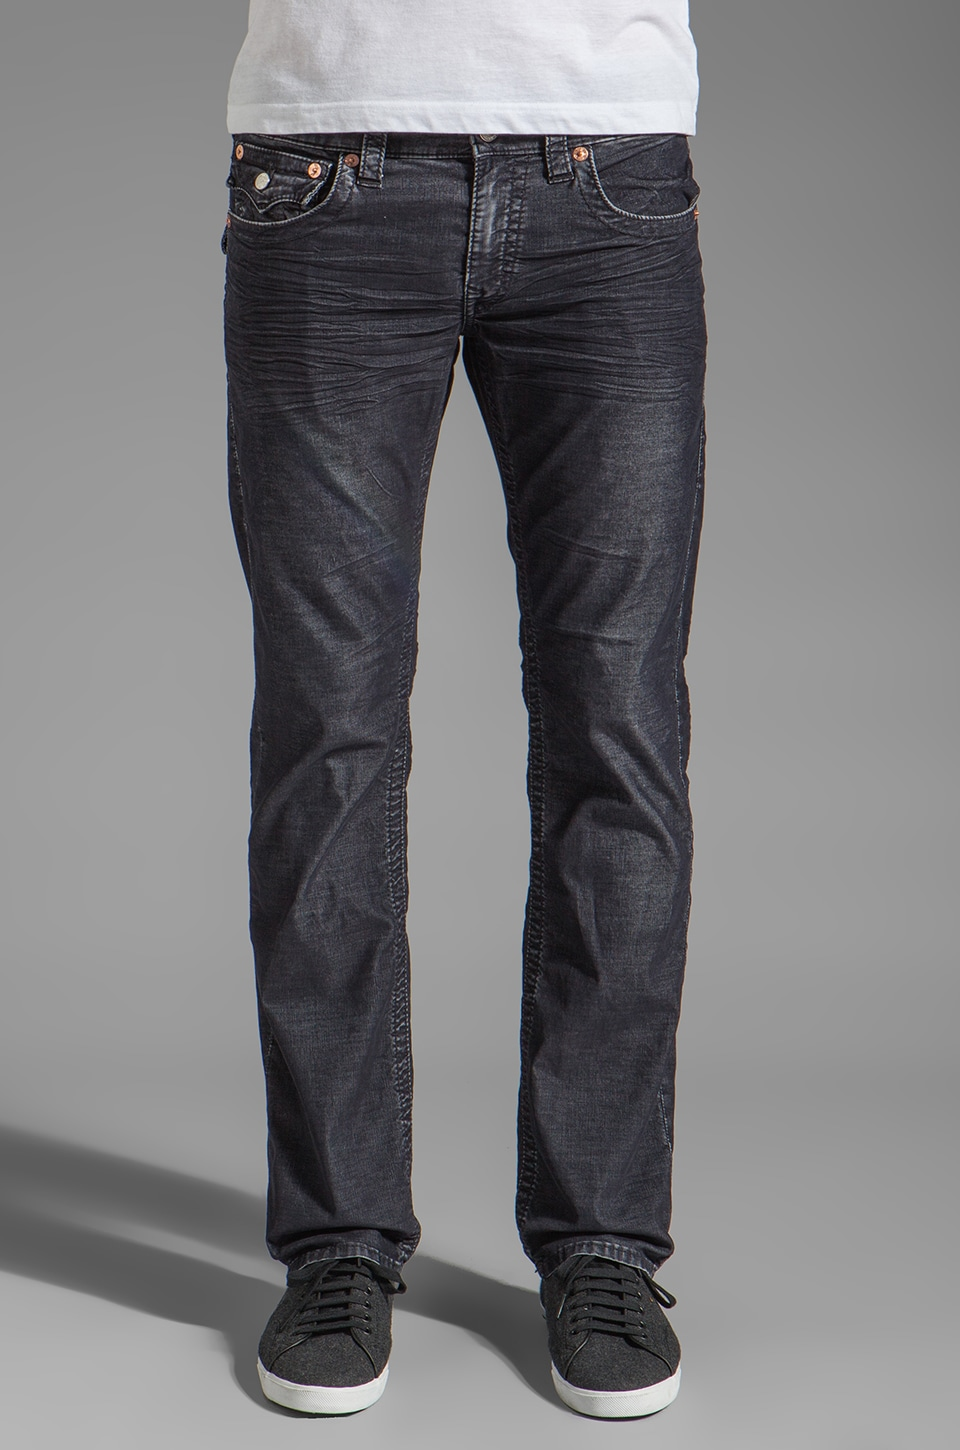 True Religion Ricky Straight Leg Cord in Indigo